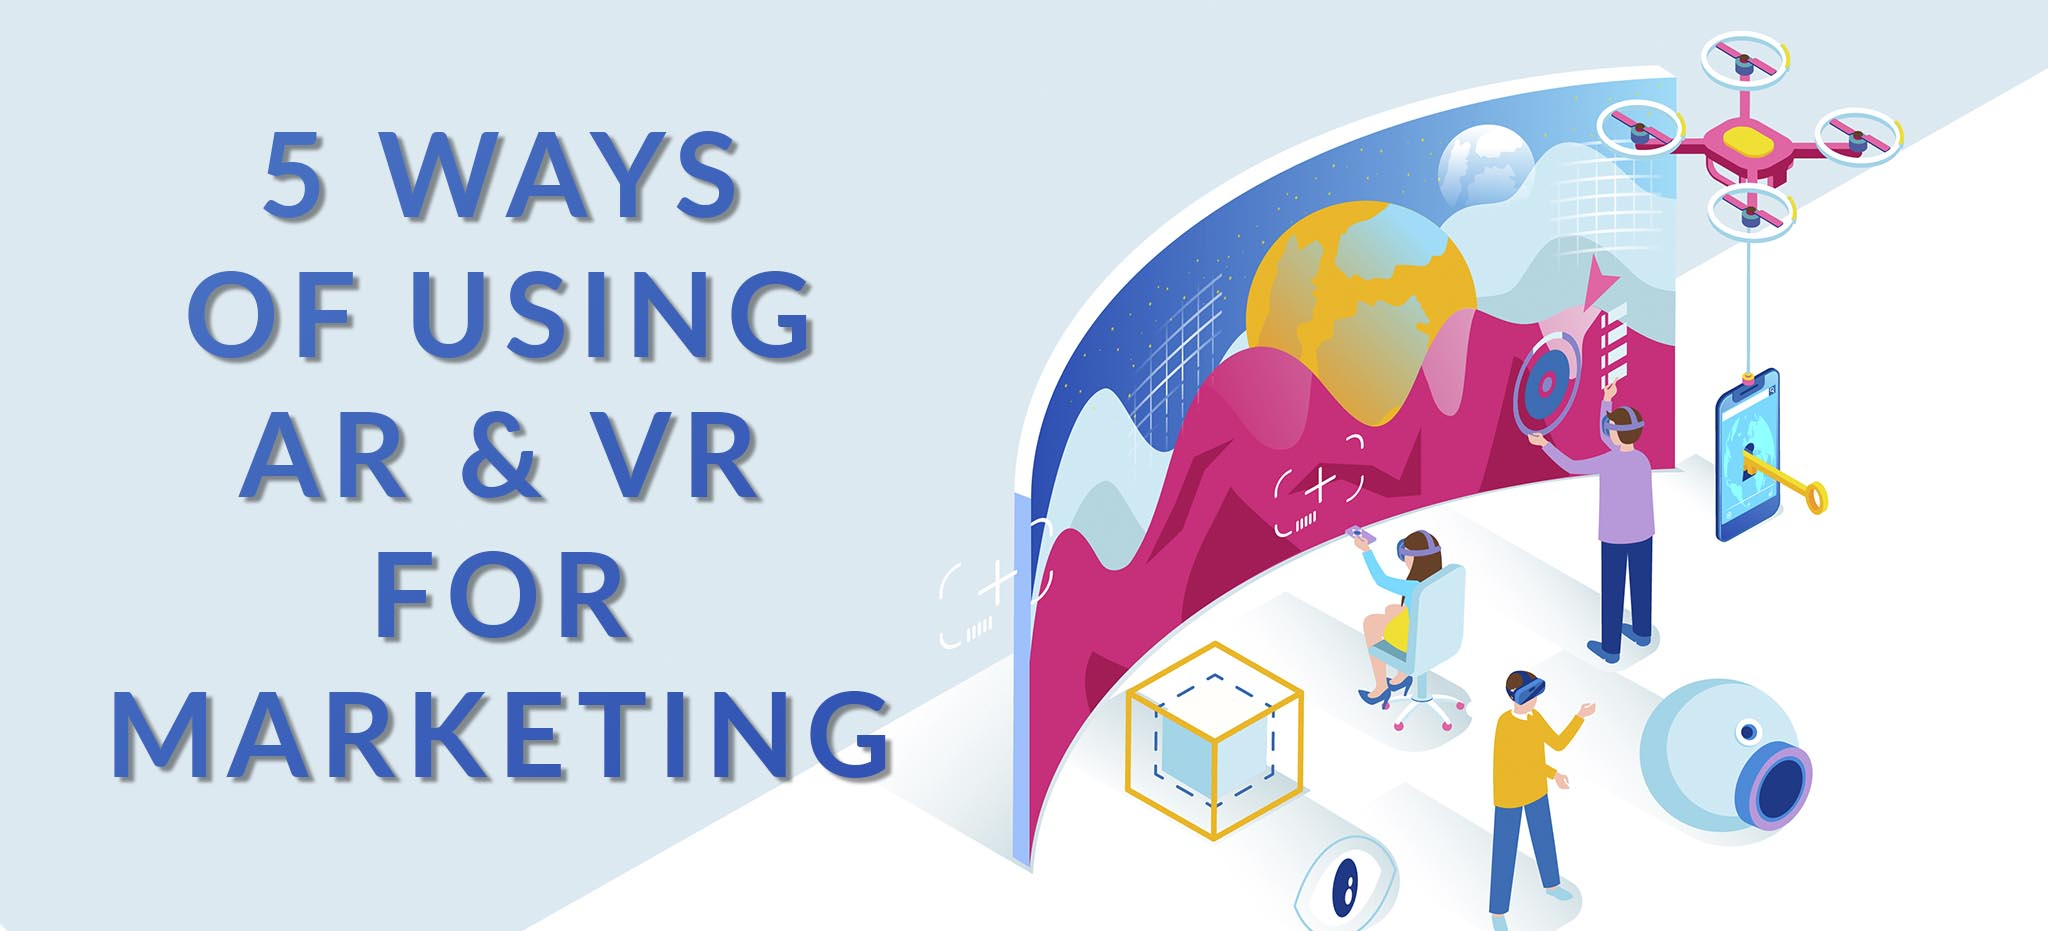 5 Ways of Using AR & VR For Marketing